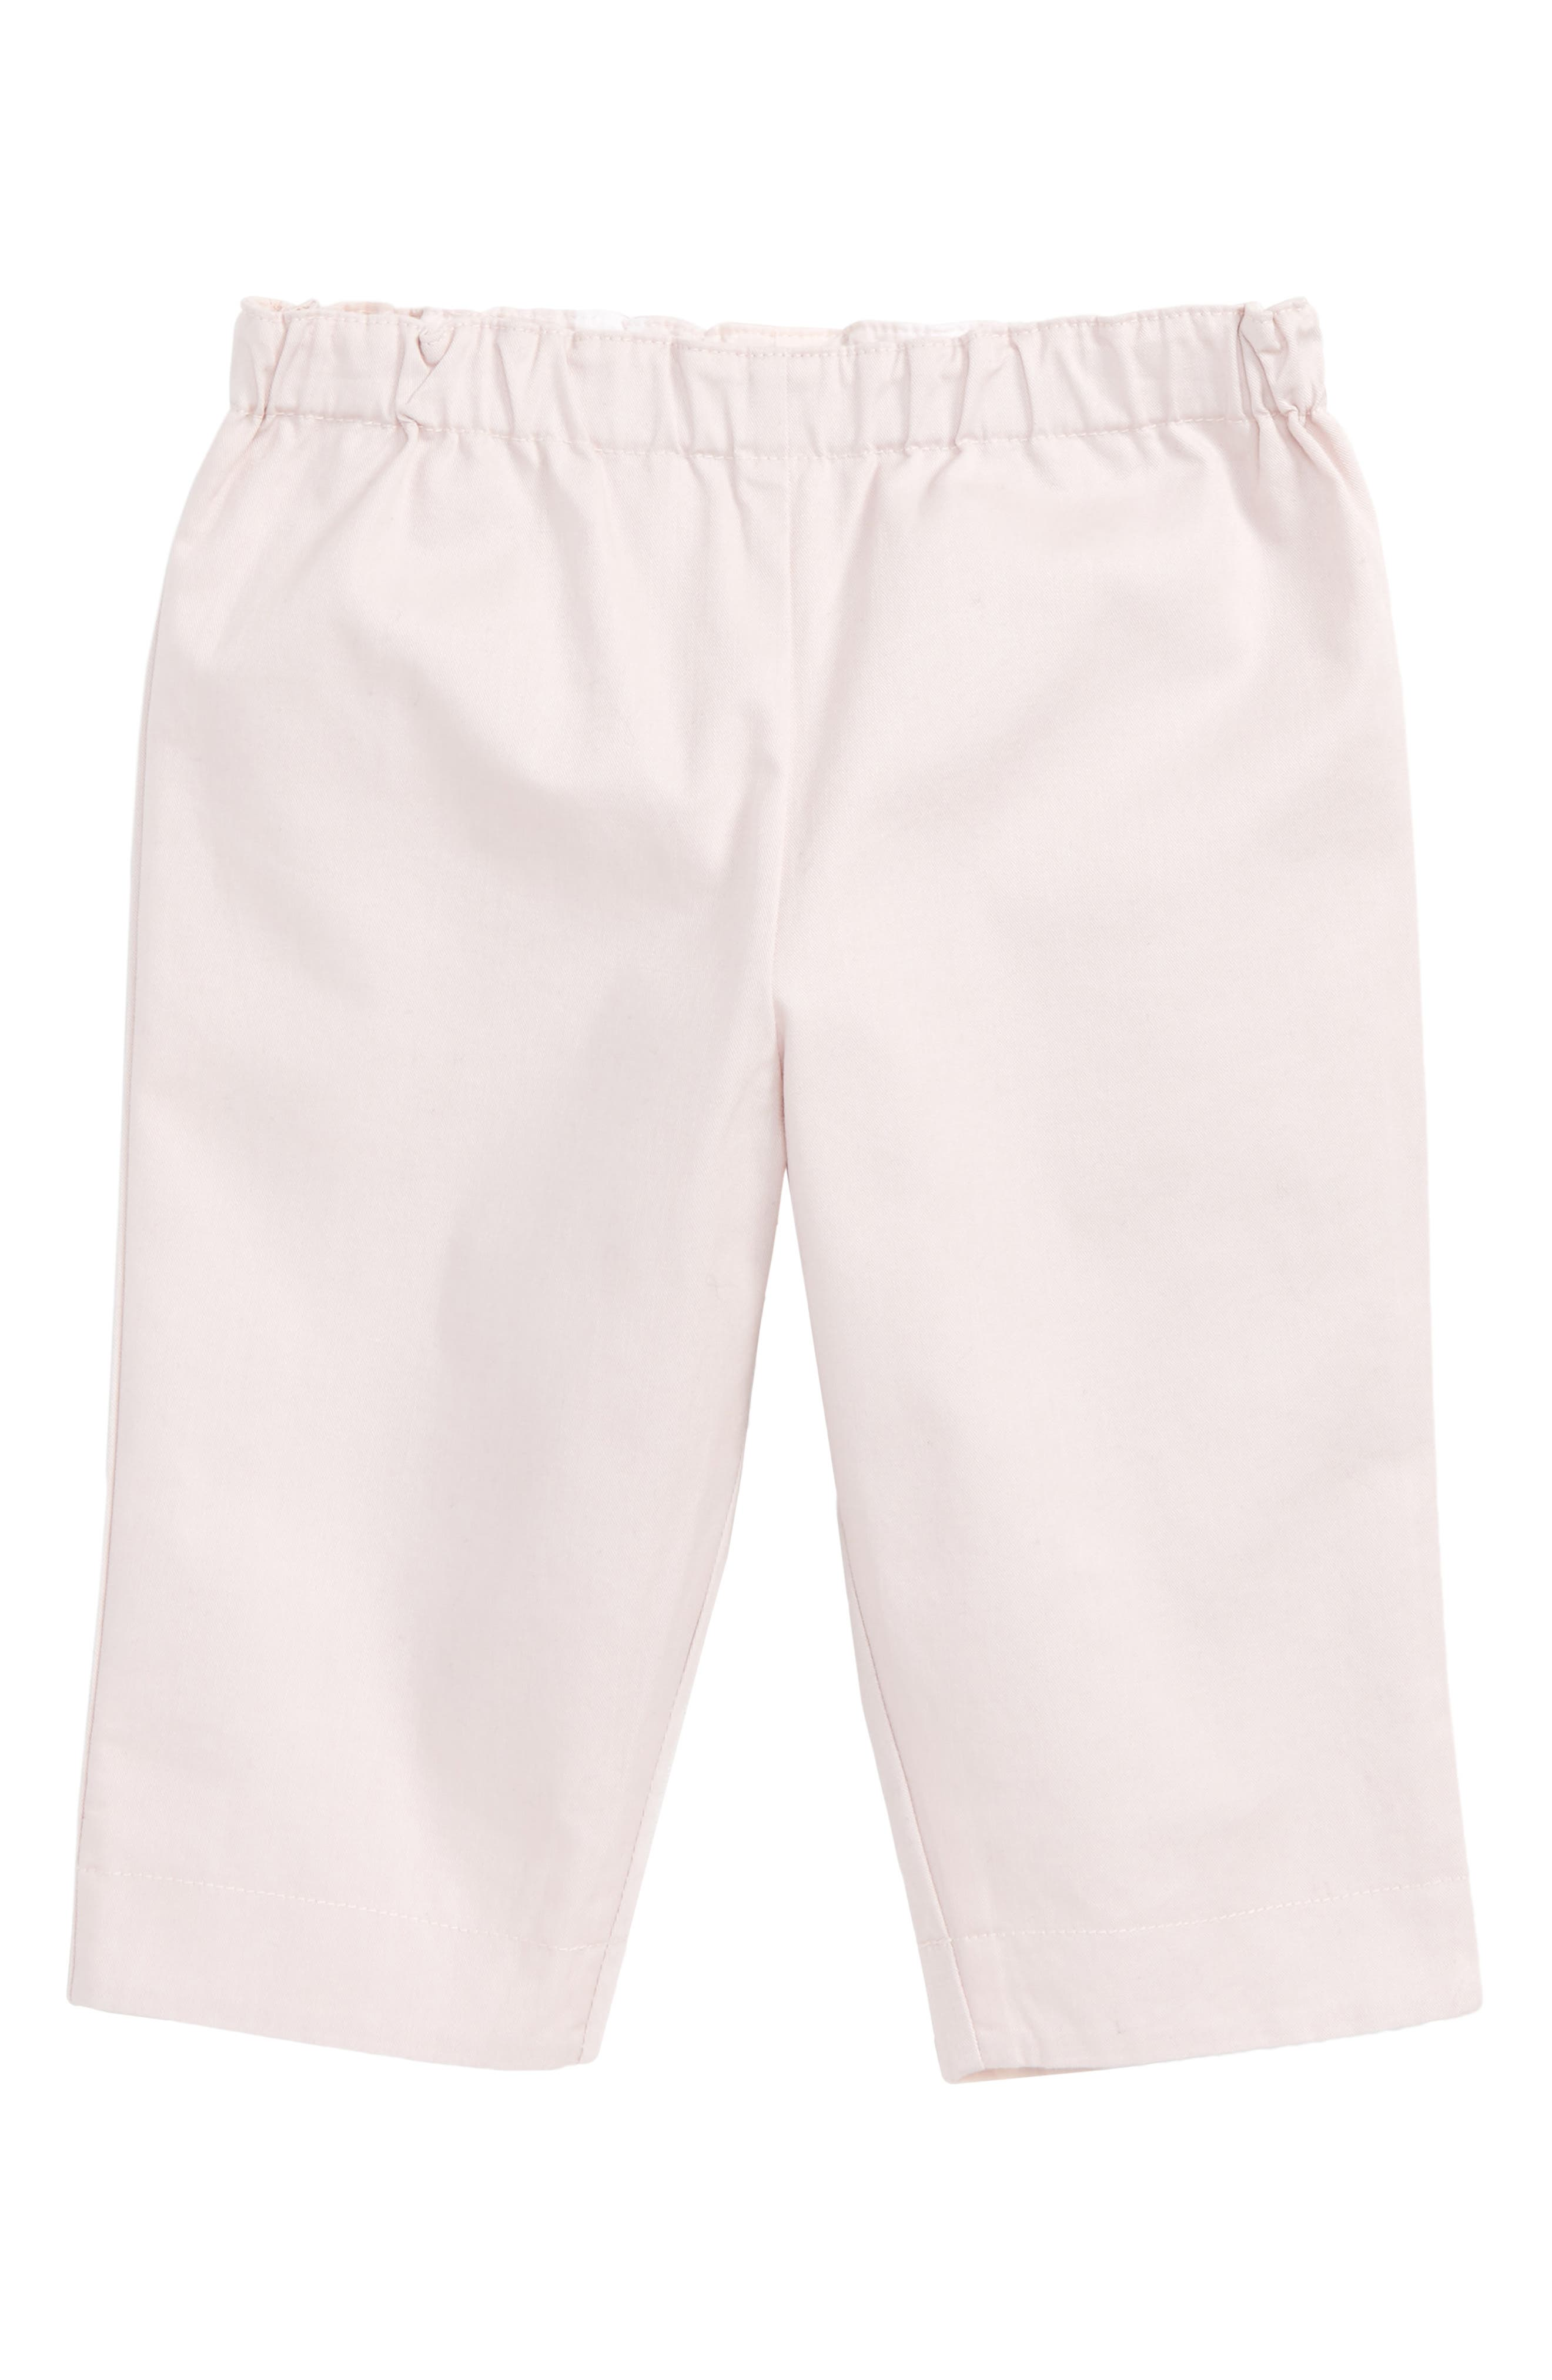 Darcy Pants,                         Main,                         color, Light Pink